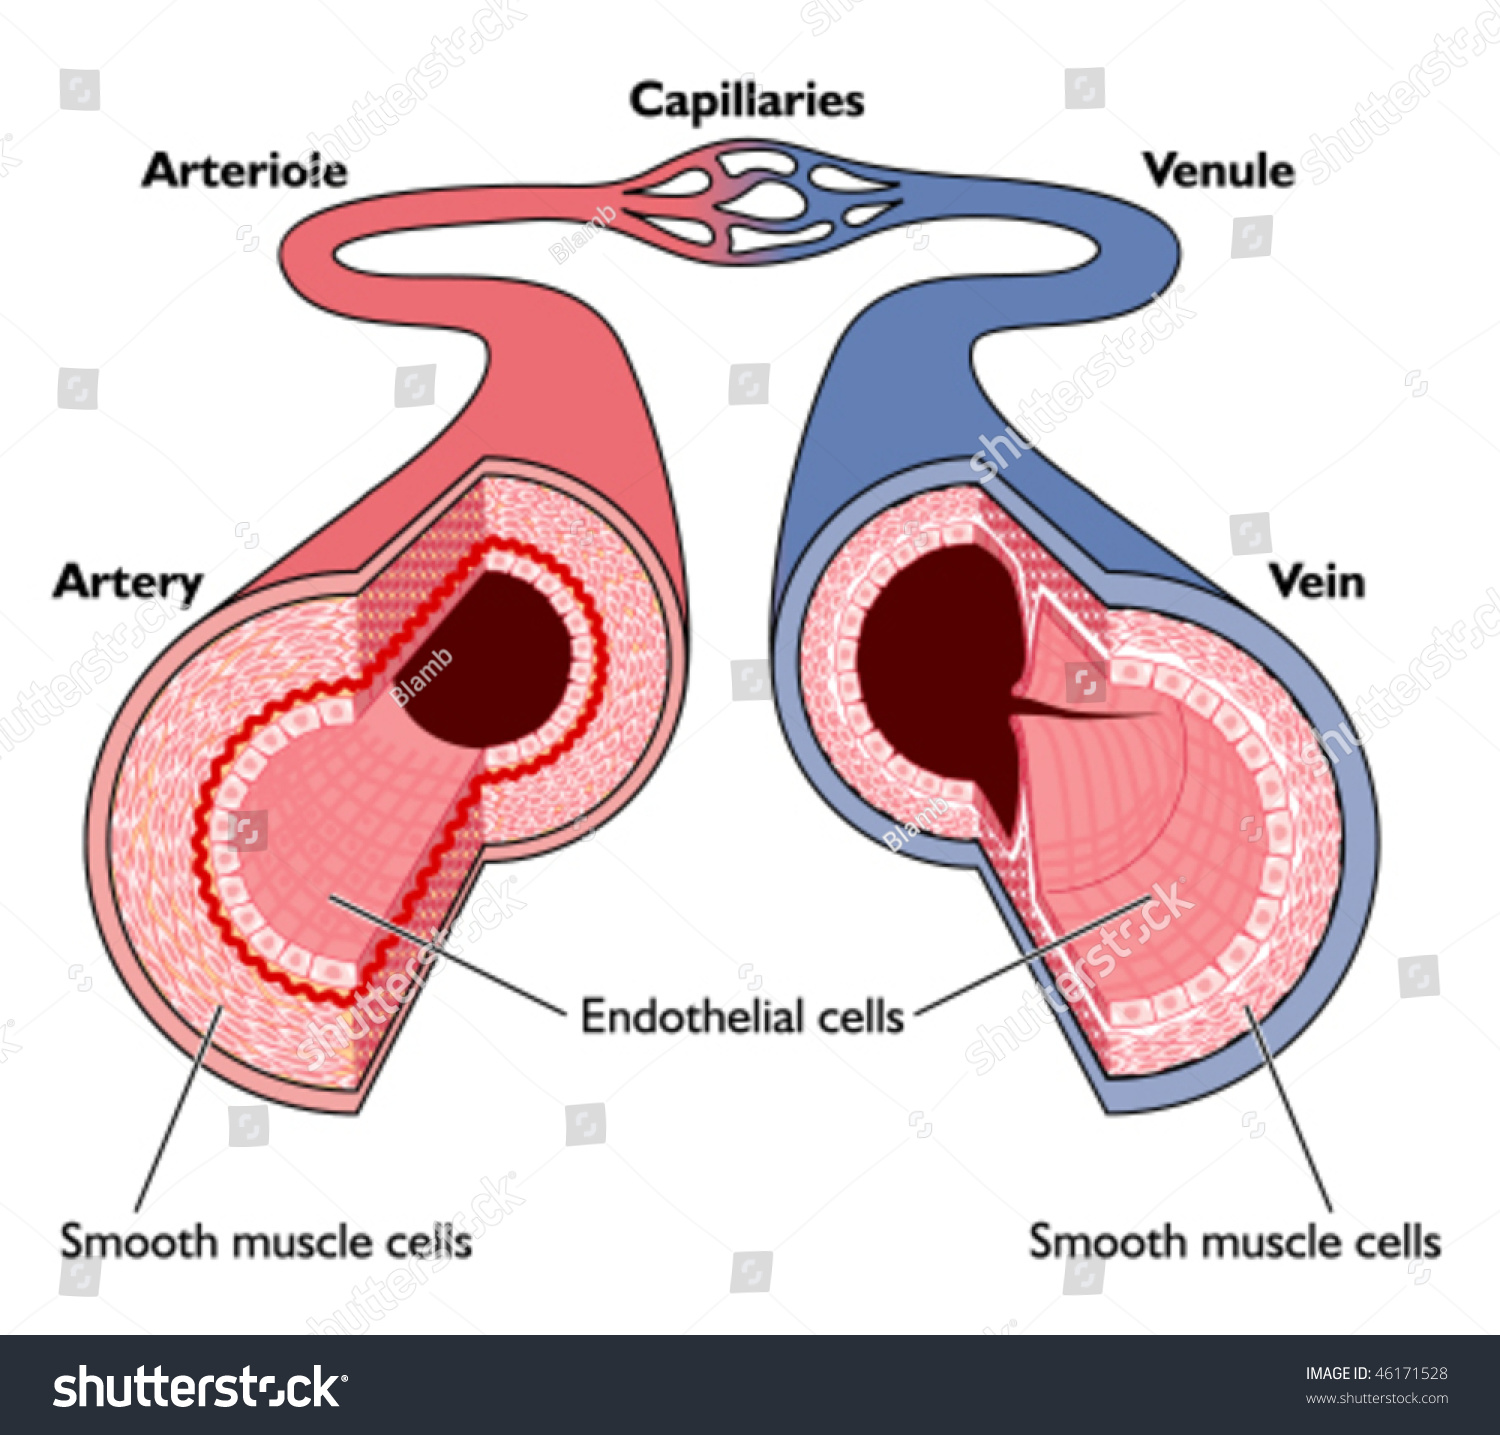 Anatomy Blood Vessels Artery Through Capillaries Stock Vector